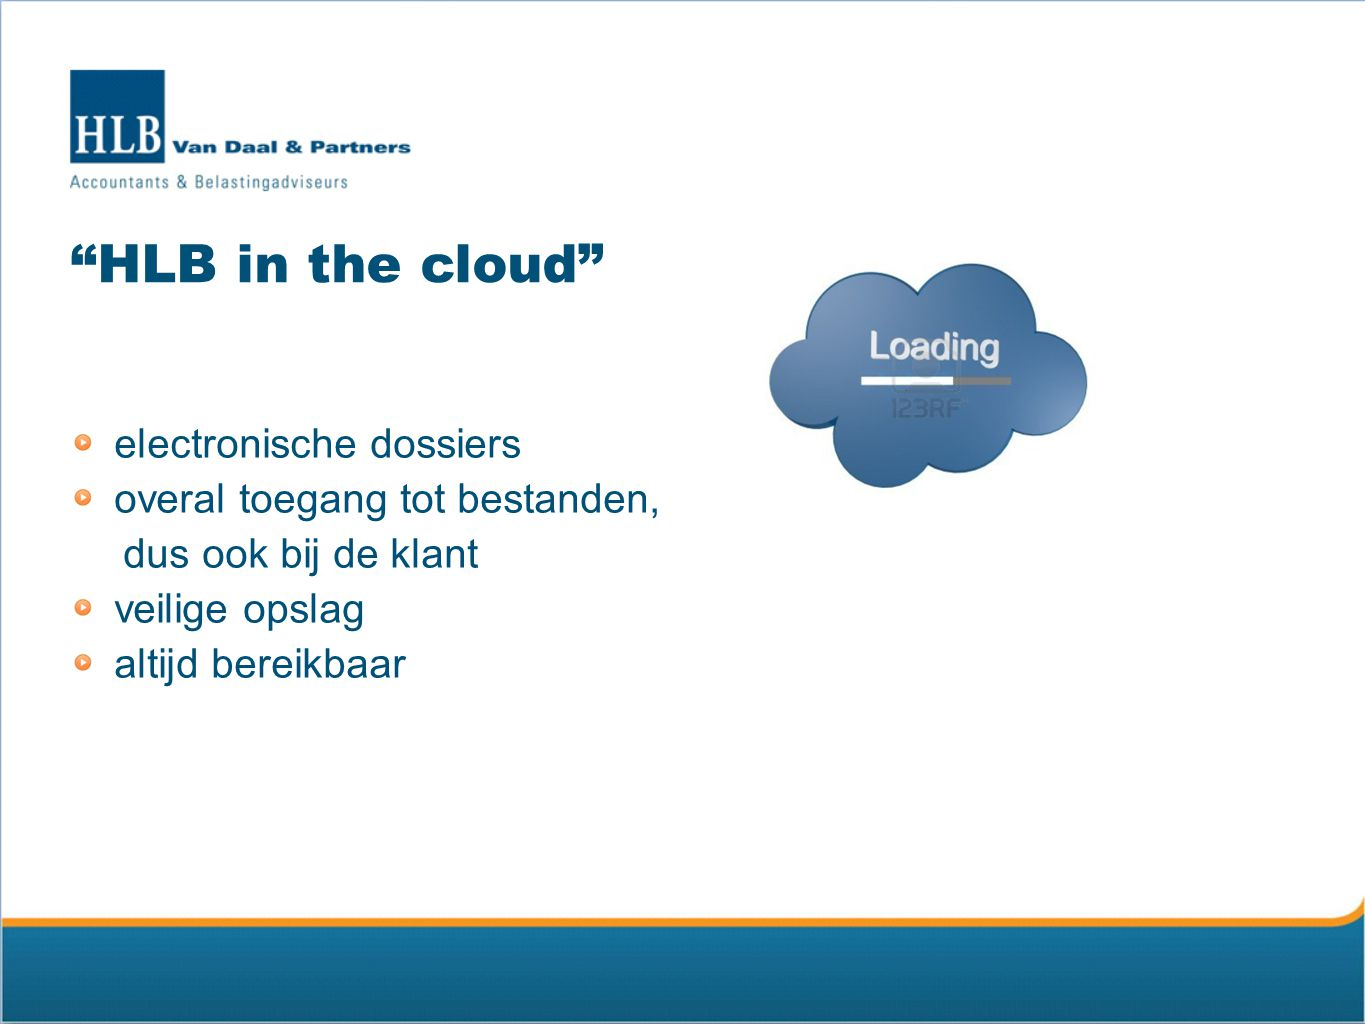 HLB in the cloud electronische dossiers